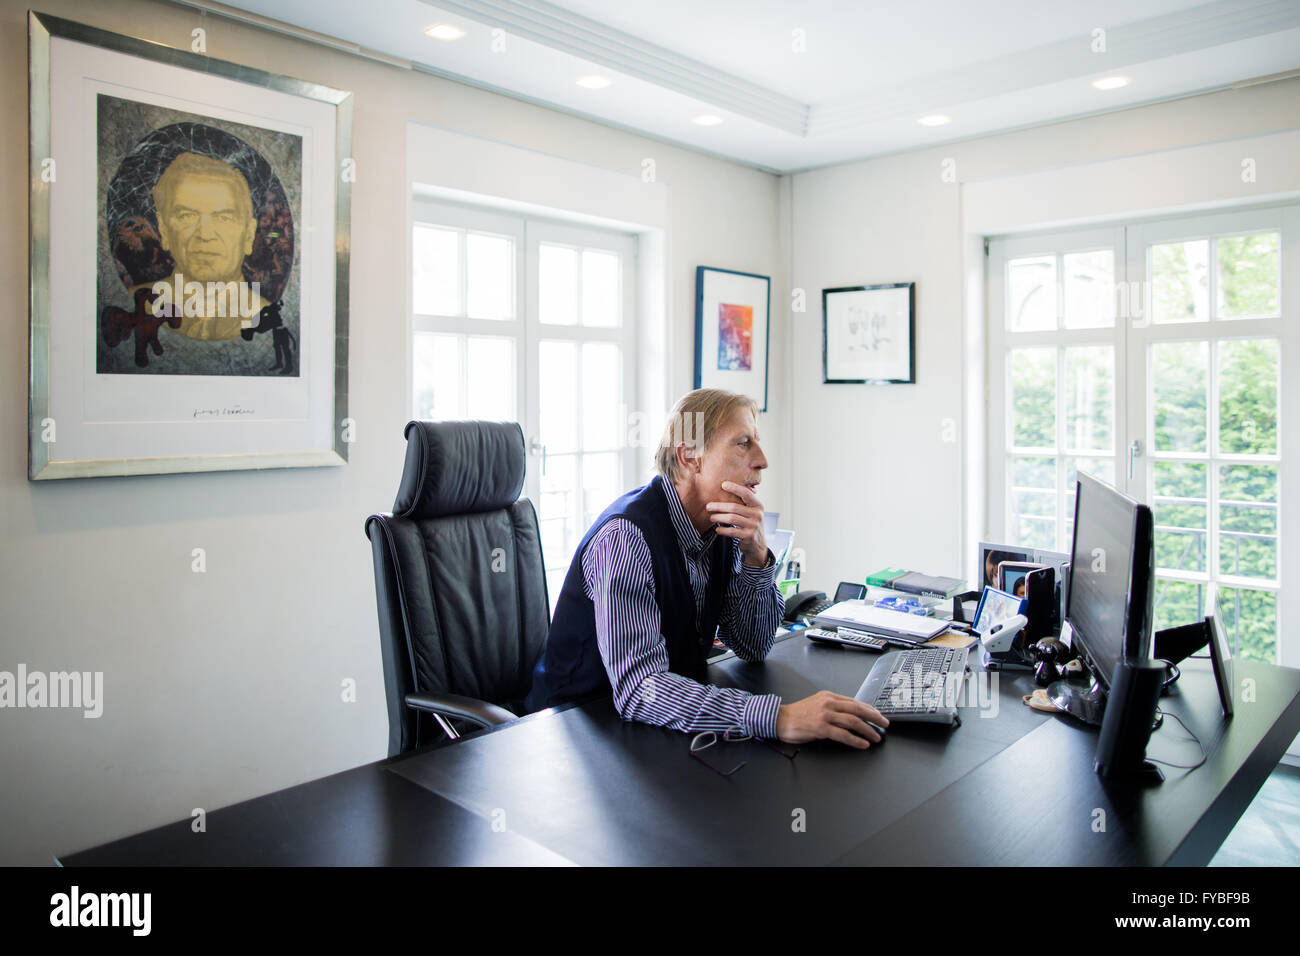 dpa-Exclusive - Soccer coach Christoph Daum works on his computer as he sits in front of a replicated portrait painting - Stock Image